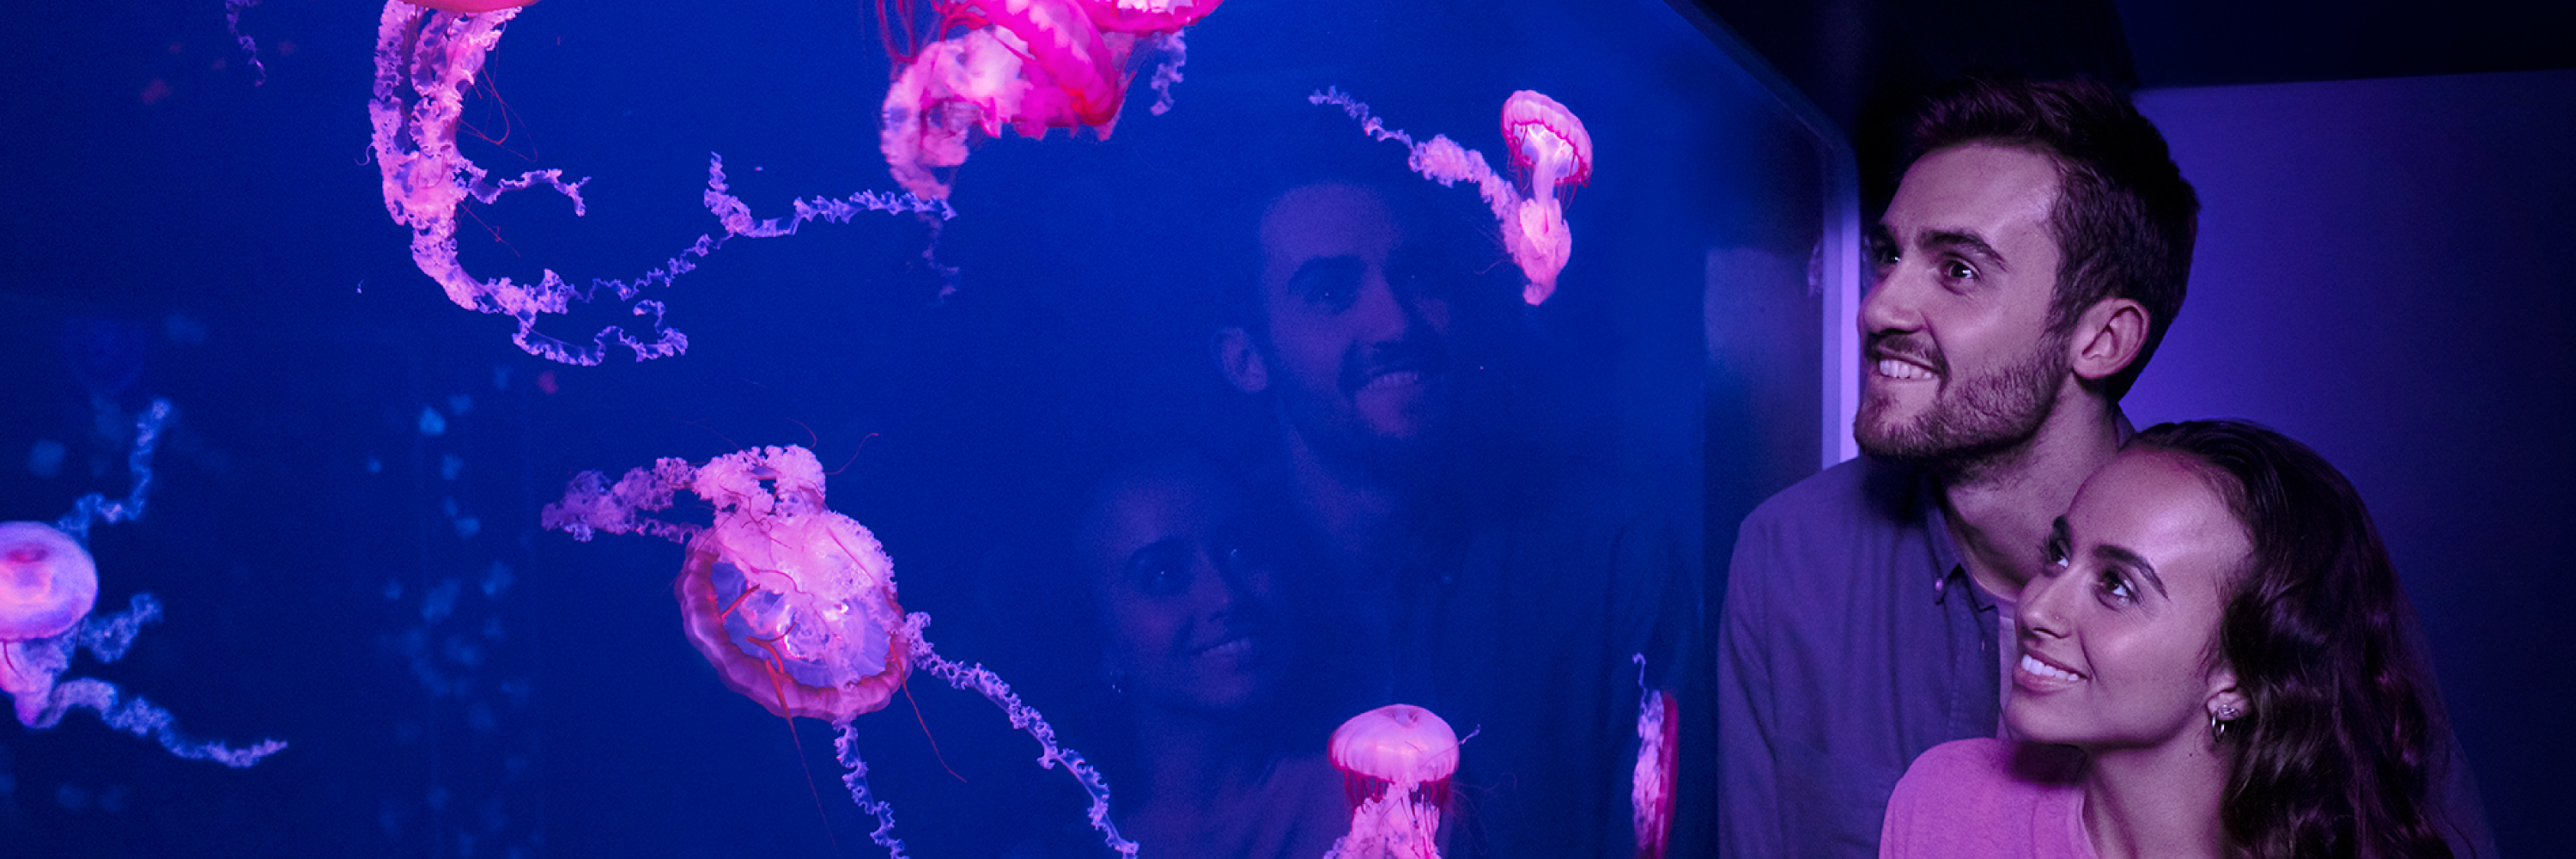 Jellyfish Couple Front Facing 3000X1000 | SEA LIFE Aquarium